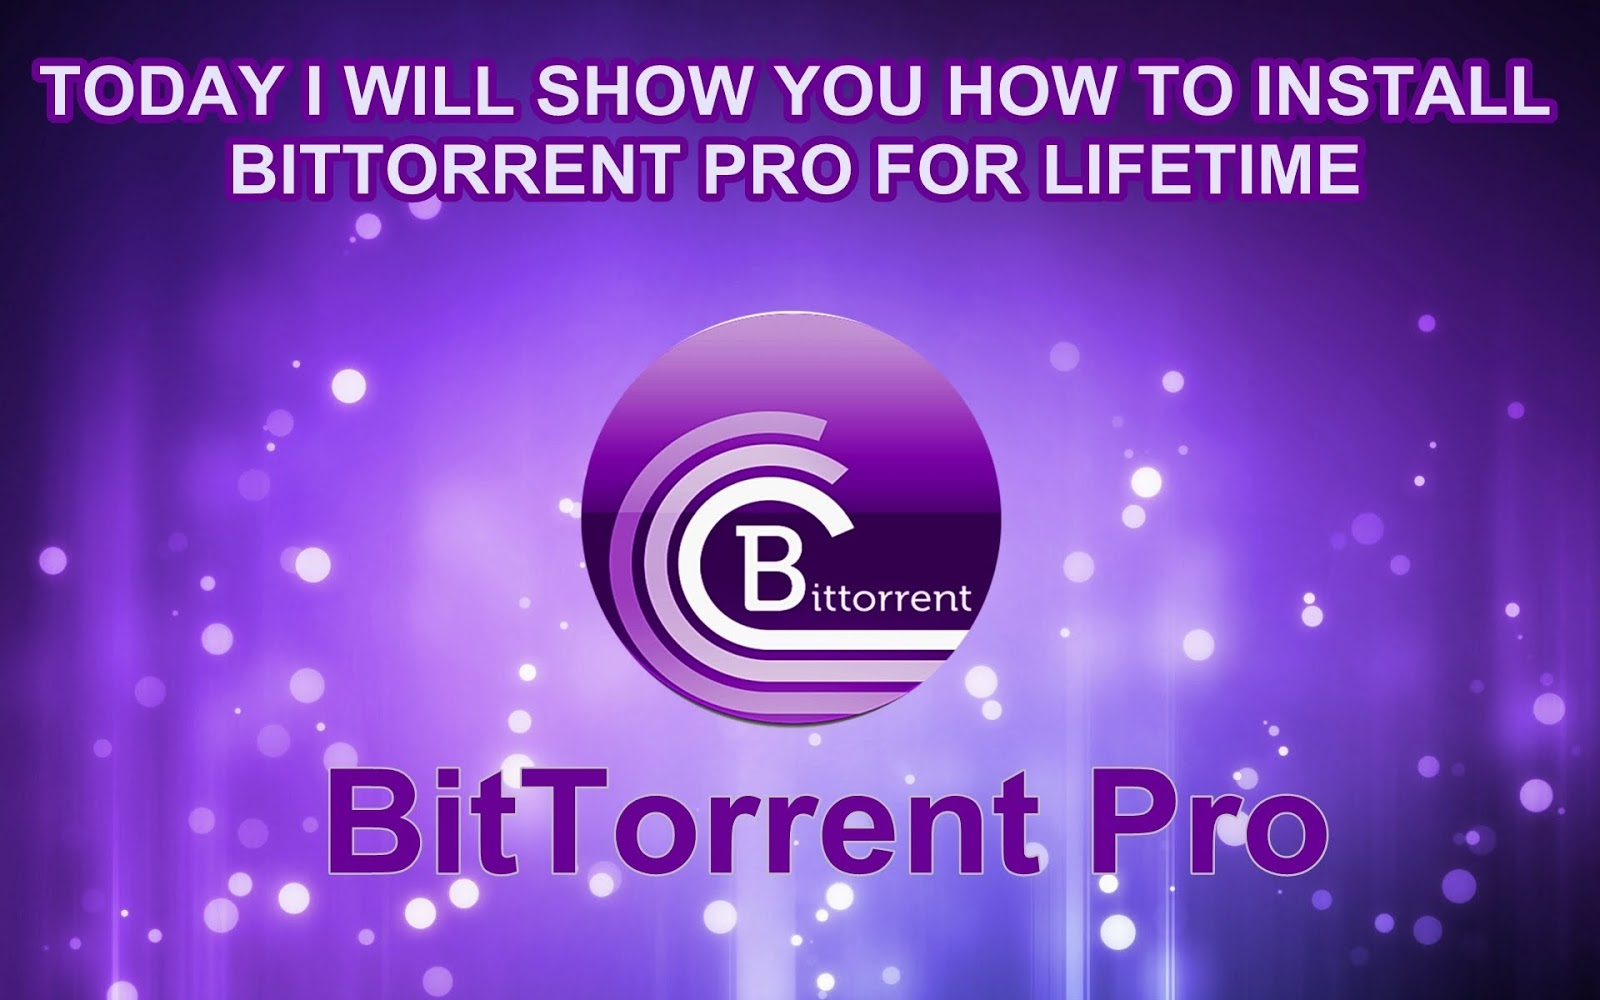 bittorrent pro free download for windows 7